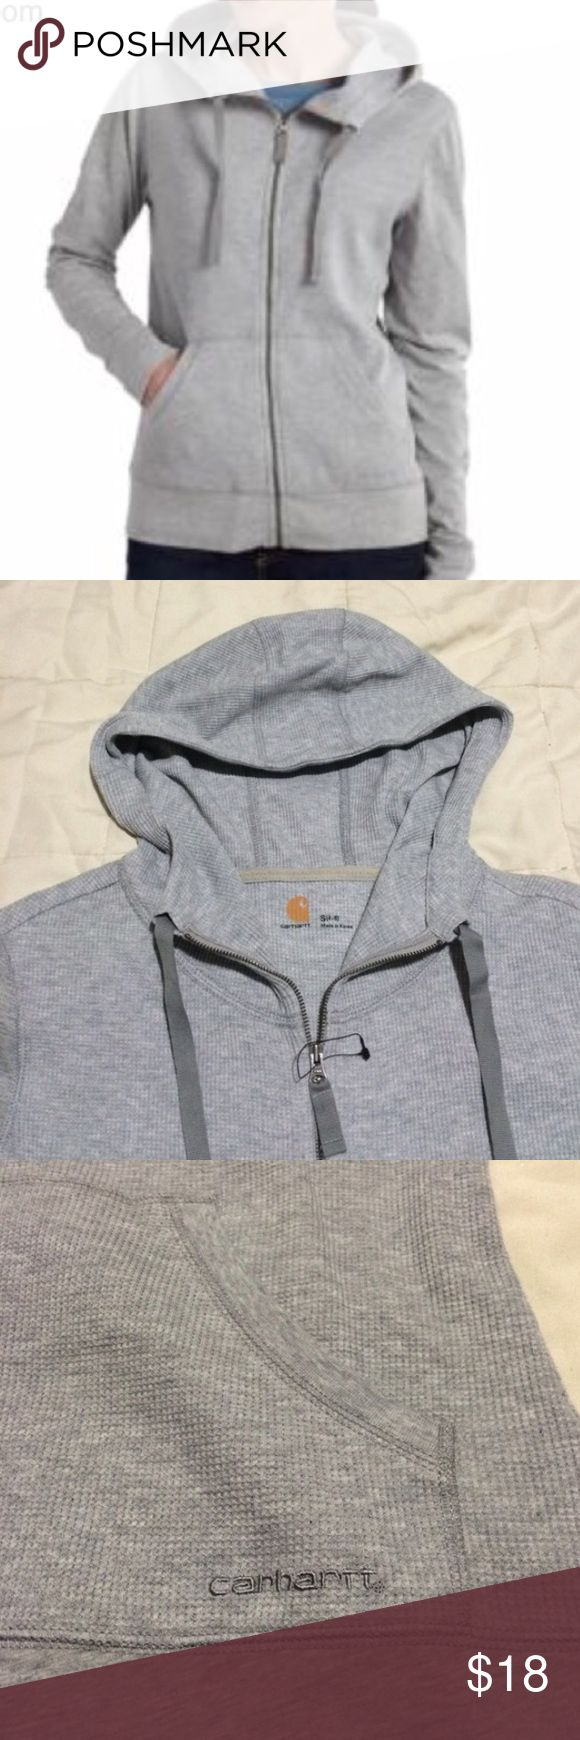 🎄SALE🎄CARHARTT waffle cotton hoodie CARHARTT - Brand new light hoodie. Waffle cotton, Front zipper, Hood with adjustable strings. Two front pockets, Logo embroidery on left pocket. Brand new, not even trued on (tag fell). Smoke free / Pet free home. Carhartt Jackets & Coats